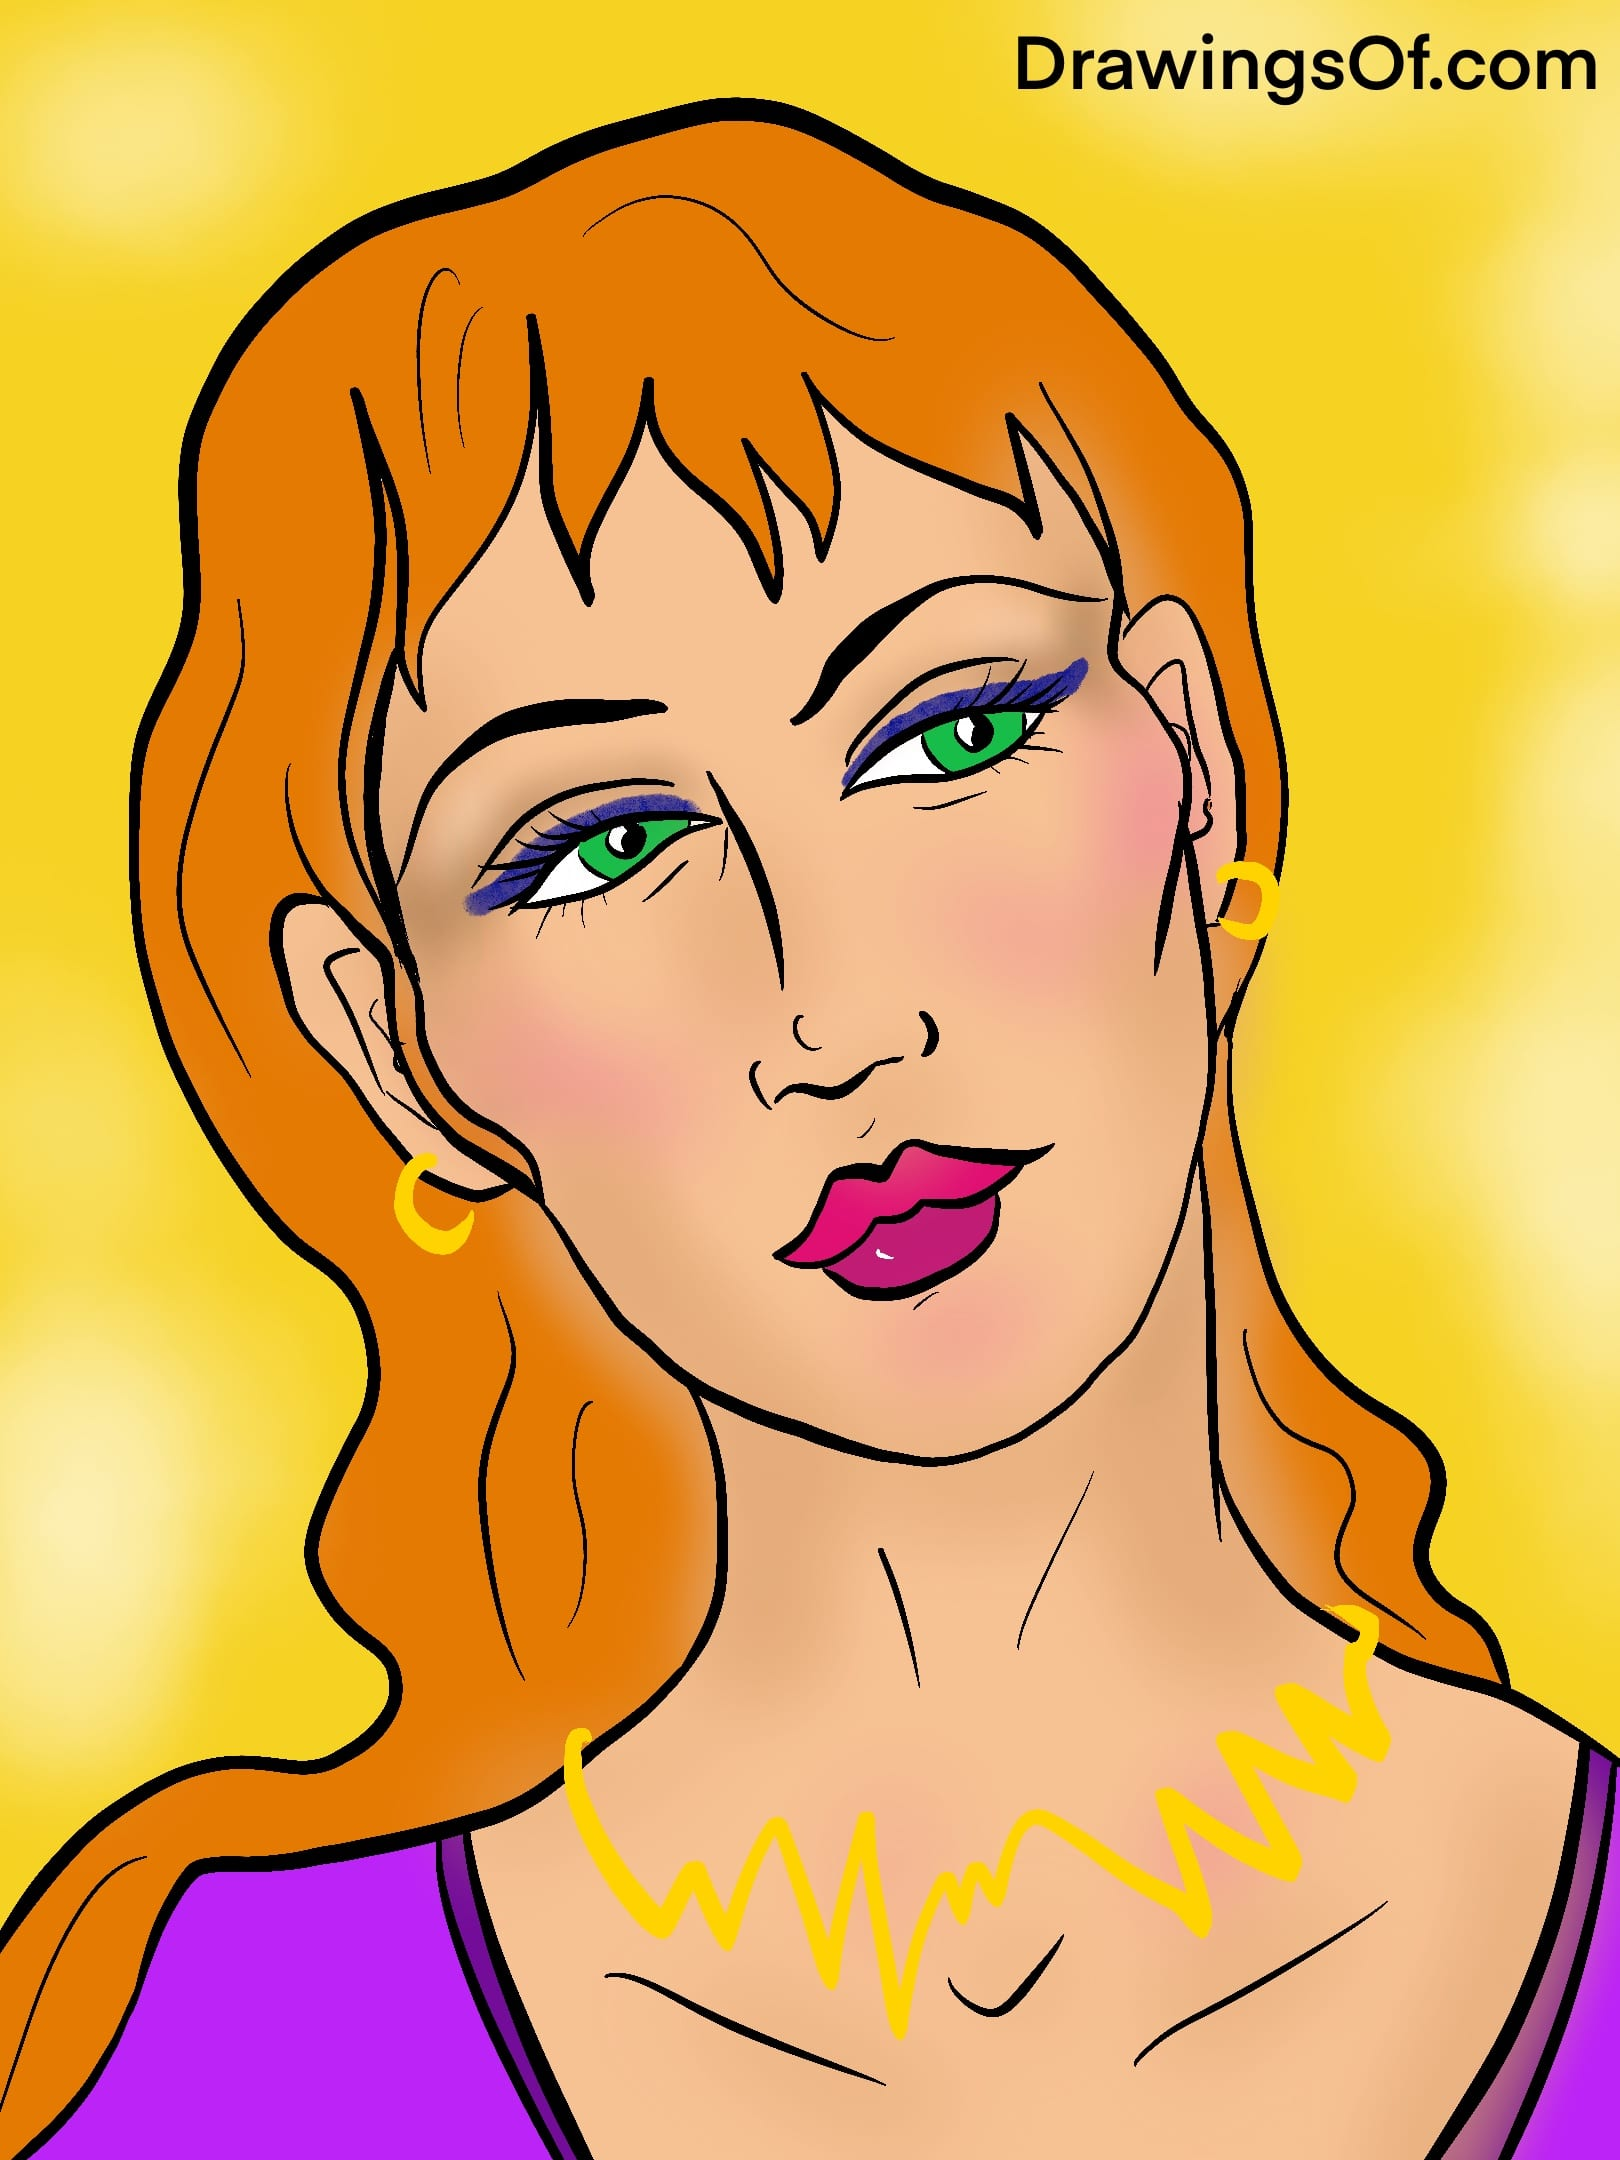 Line drawing of woman with orange hair and makeup